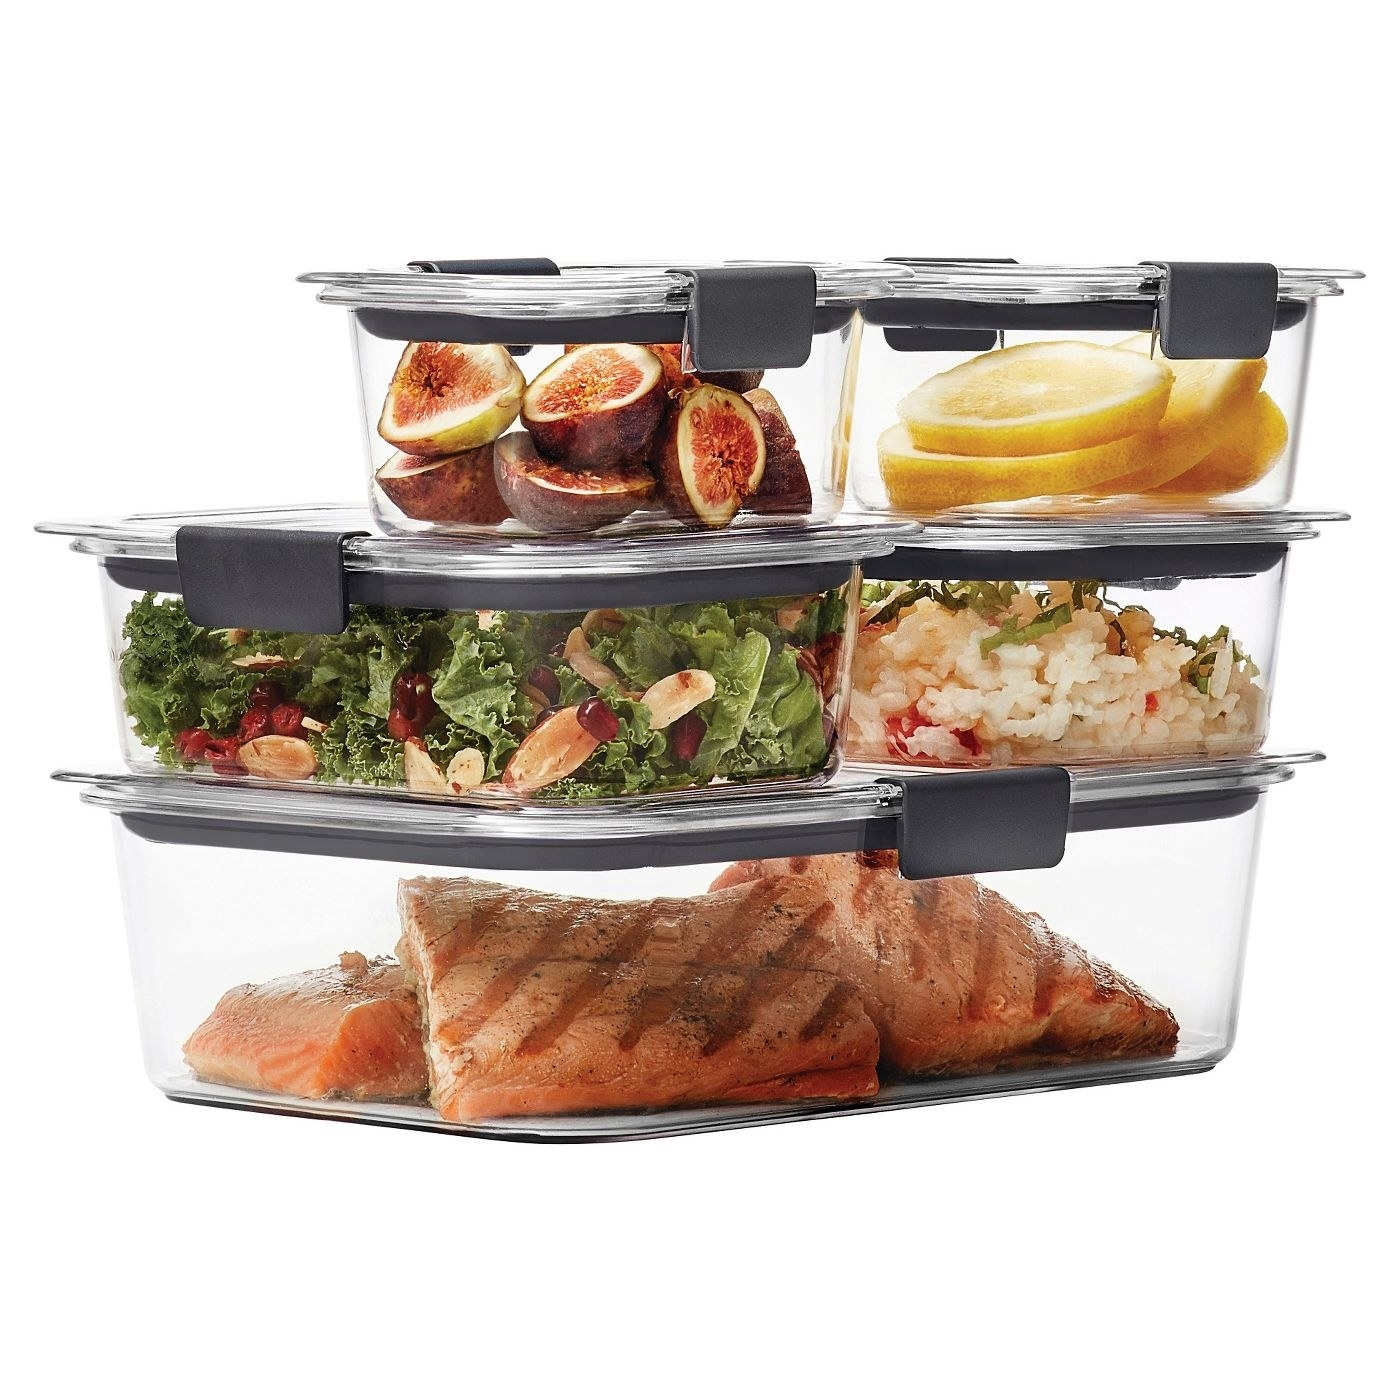 Set of containers shown filled with food